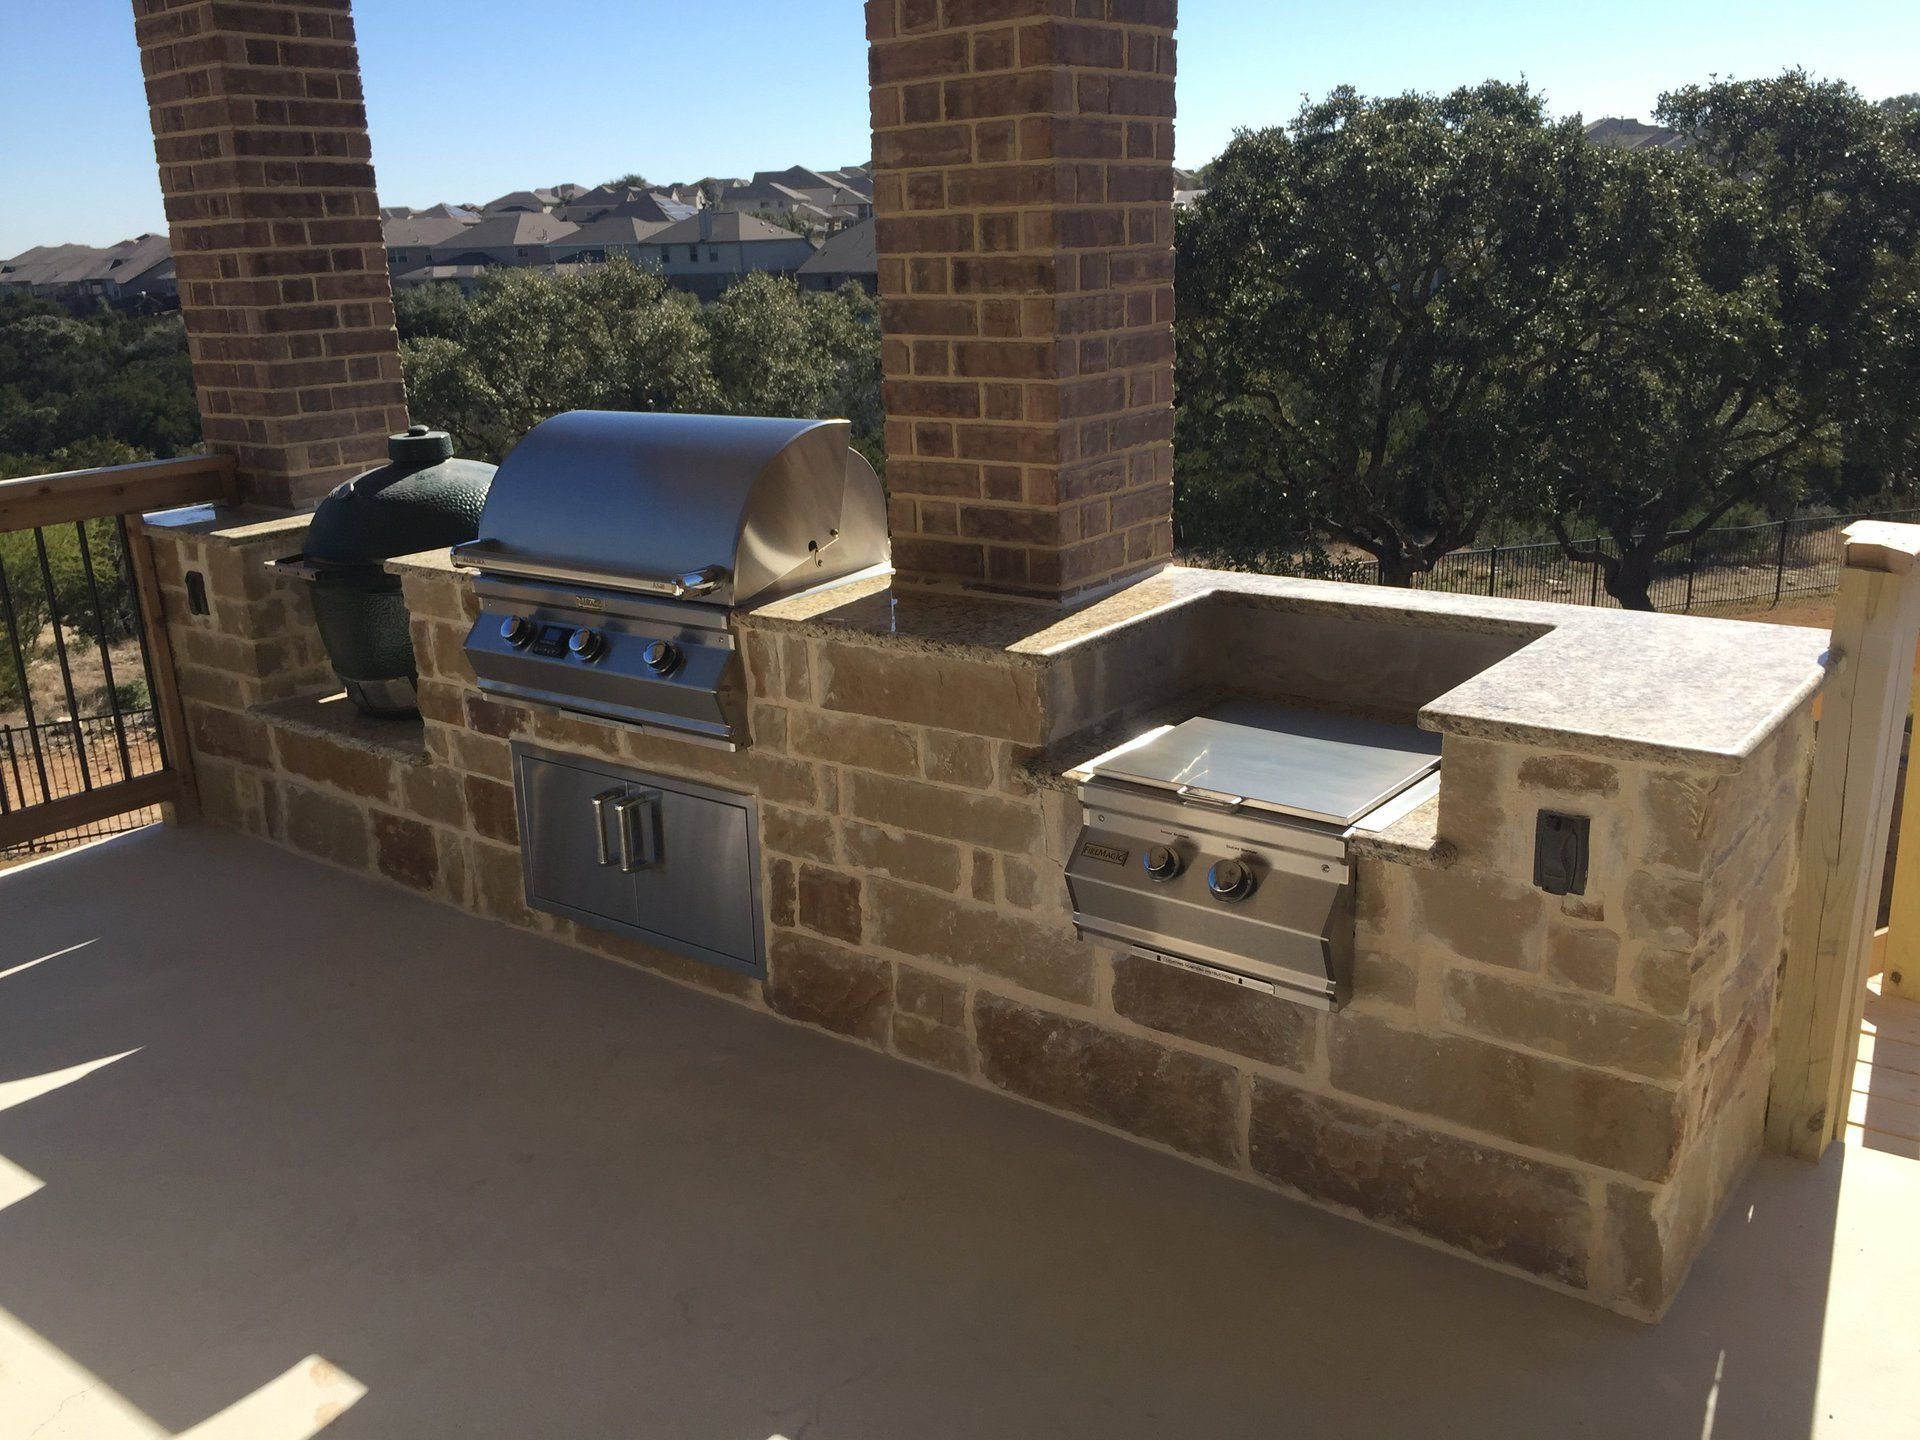 Cozy Outdoor Escapes Makes It Easy To Build The Outdoor Kitchen You Ve Always Dreamed Of In San Antonio Tx Call Today To Ord Outdoor Kitchen Backyard Outdoor